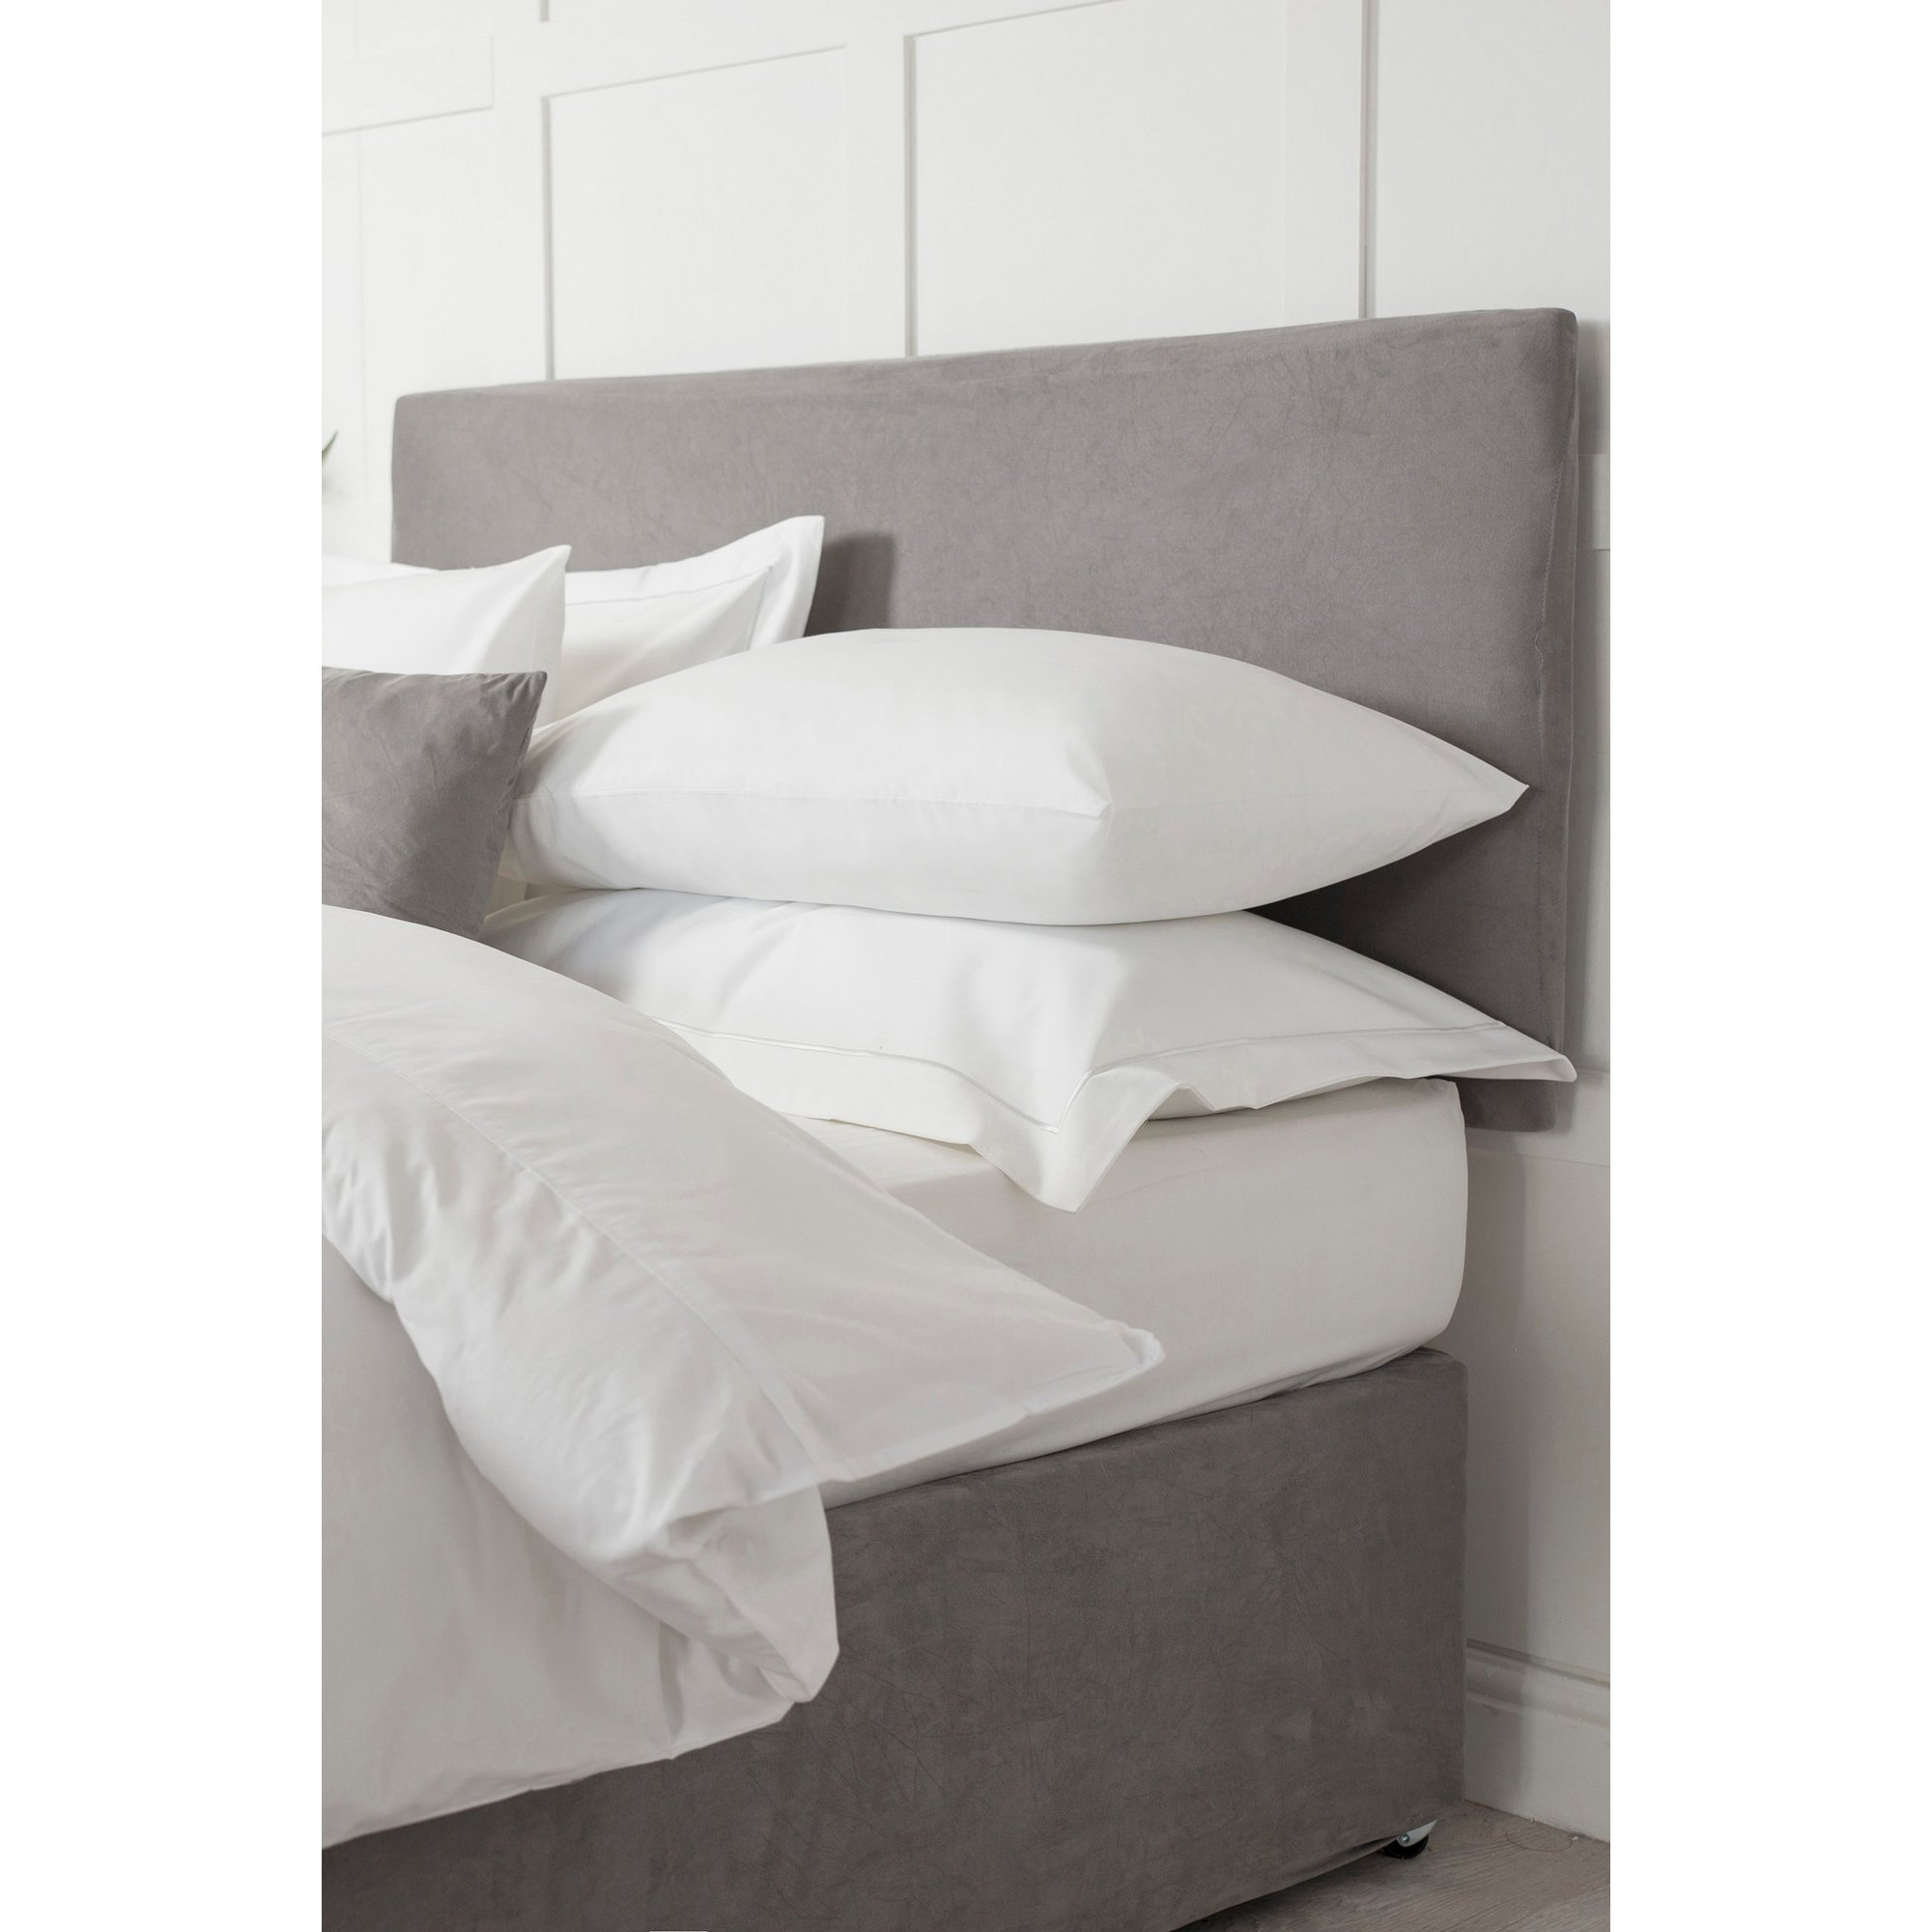 Image of Faux Suede Headboard Wrap